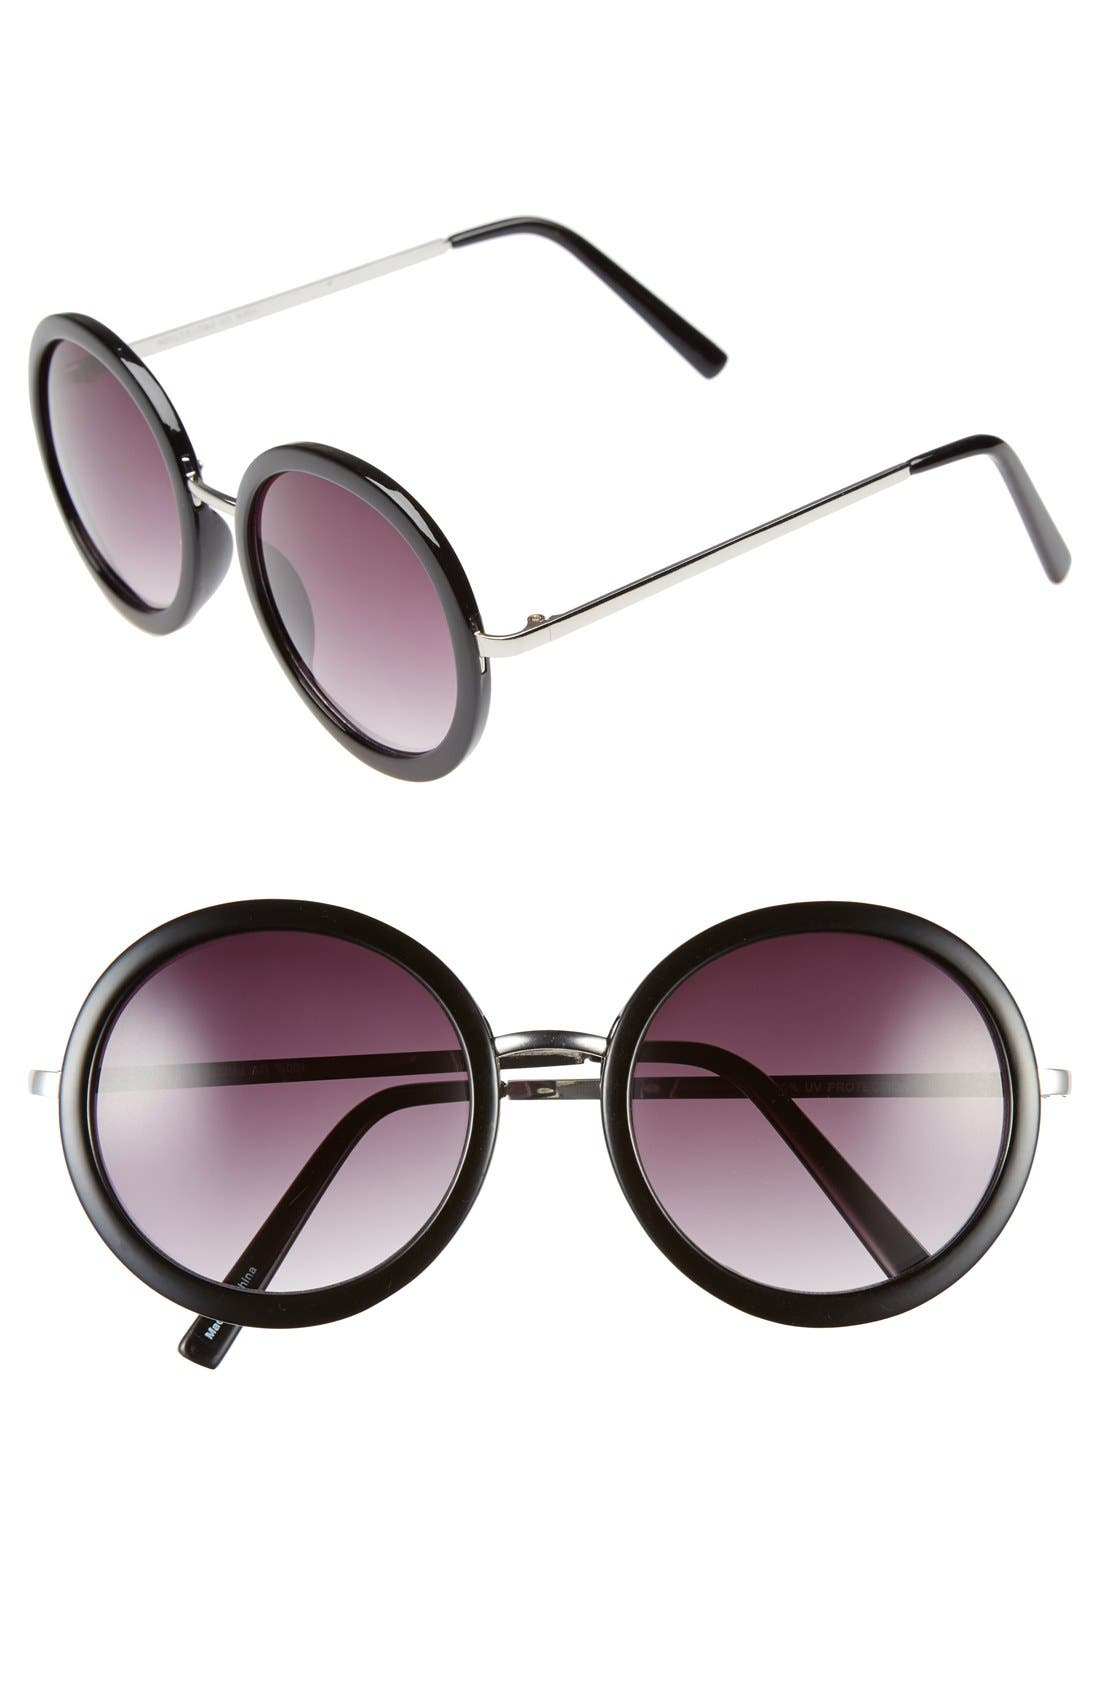 Main Image - BP. 54mm Round Sunglasses